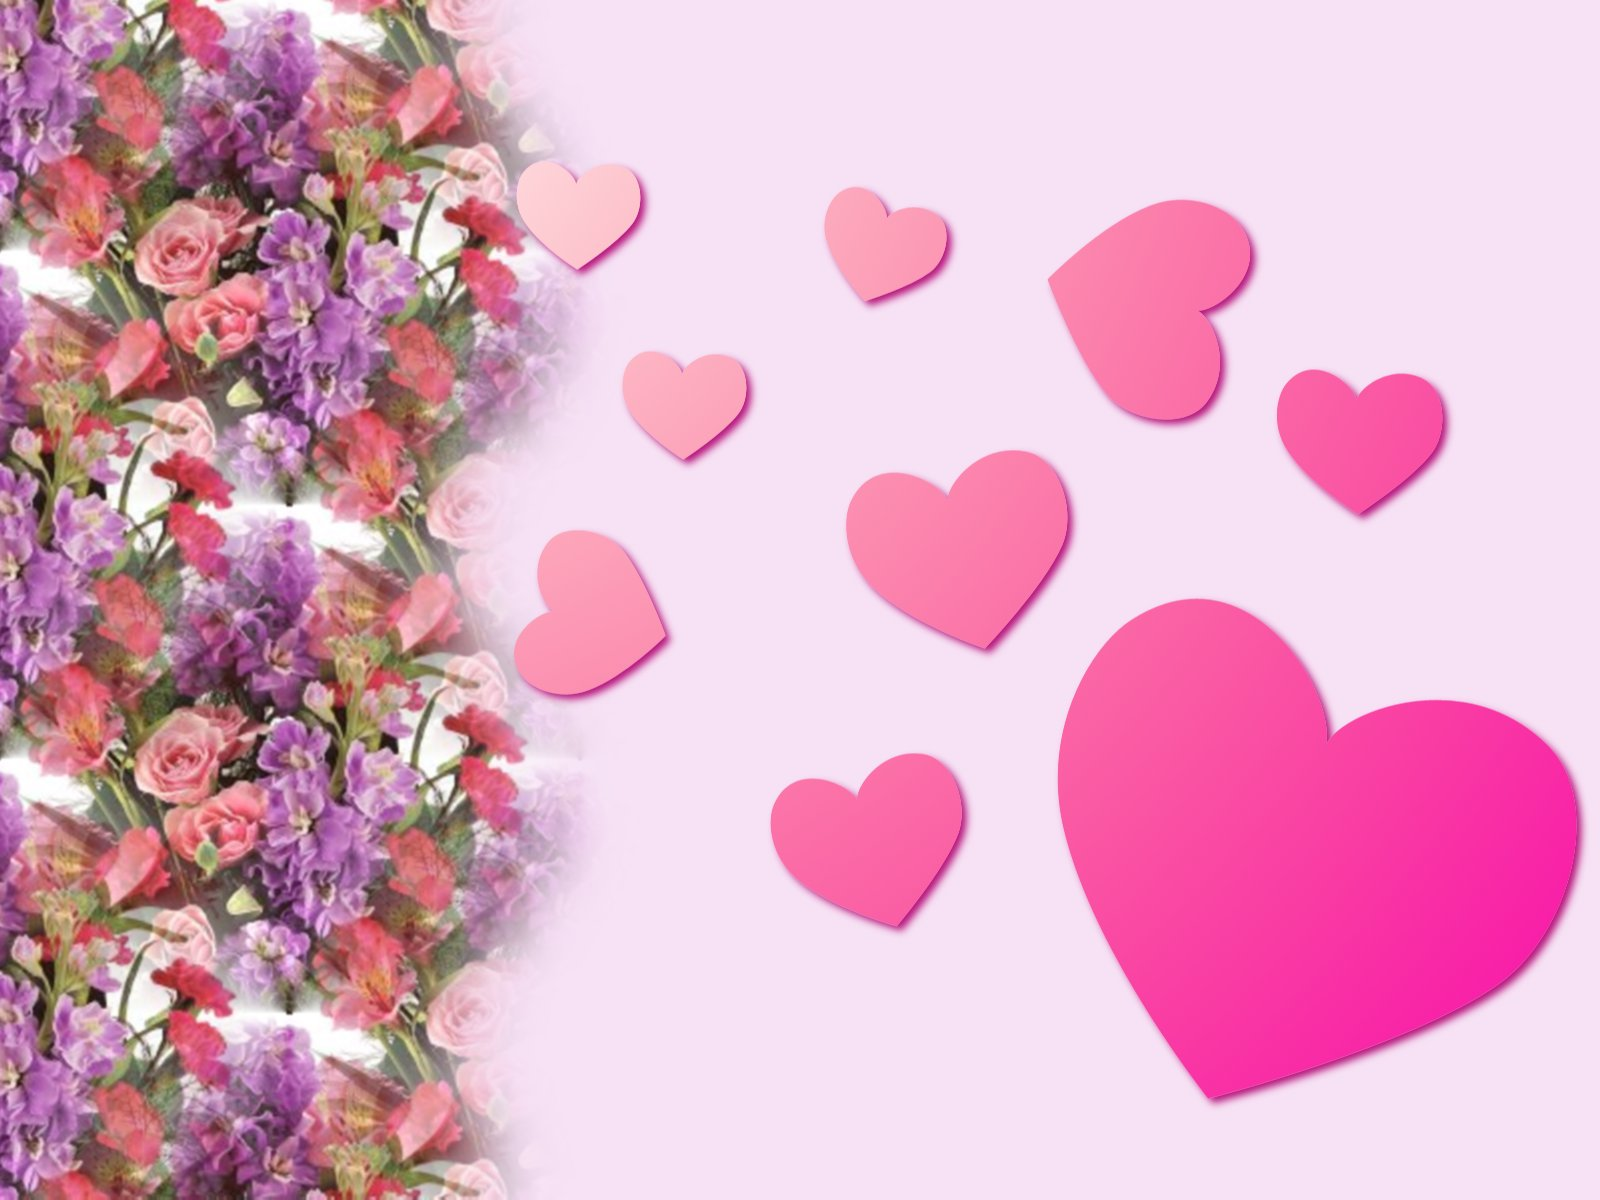 Pink Love Wallpaper: Pink Love Wallpaper